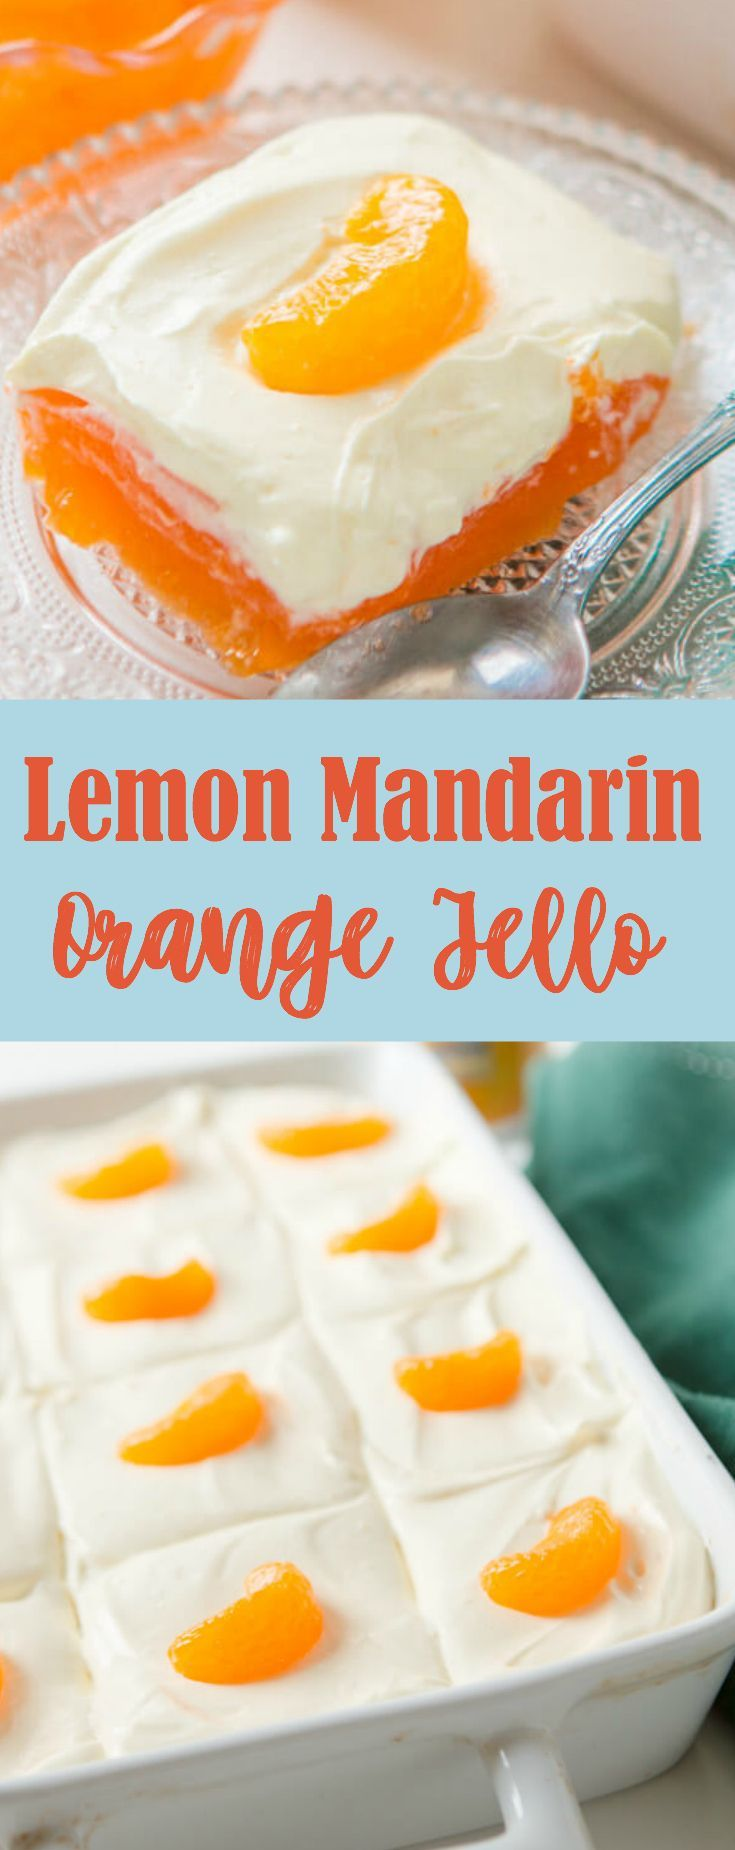 I grew up with this lemon mandarin orange jello salad at almost every single Thanksgiving and though I skip the shredded carrots this is a classic. via @ohsweetbasil